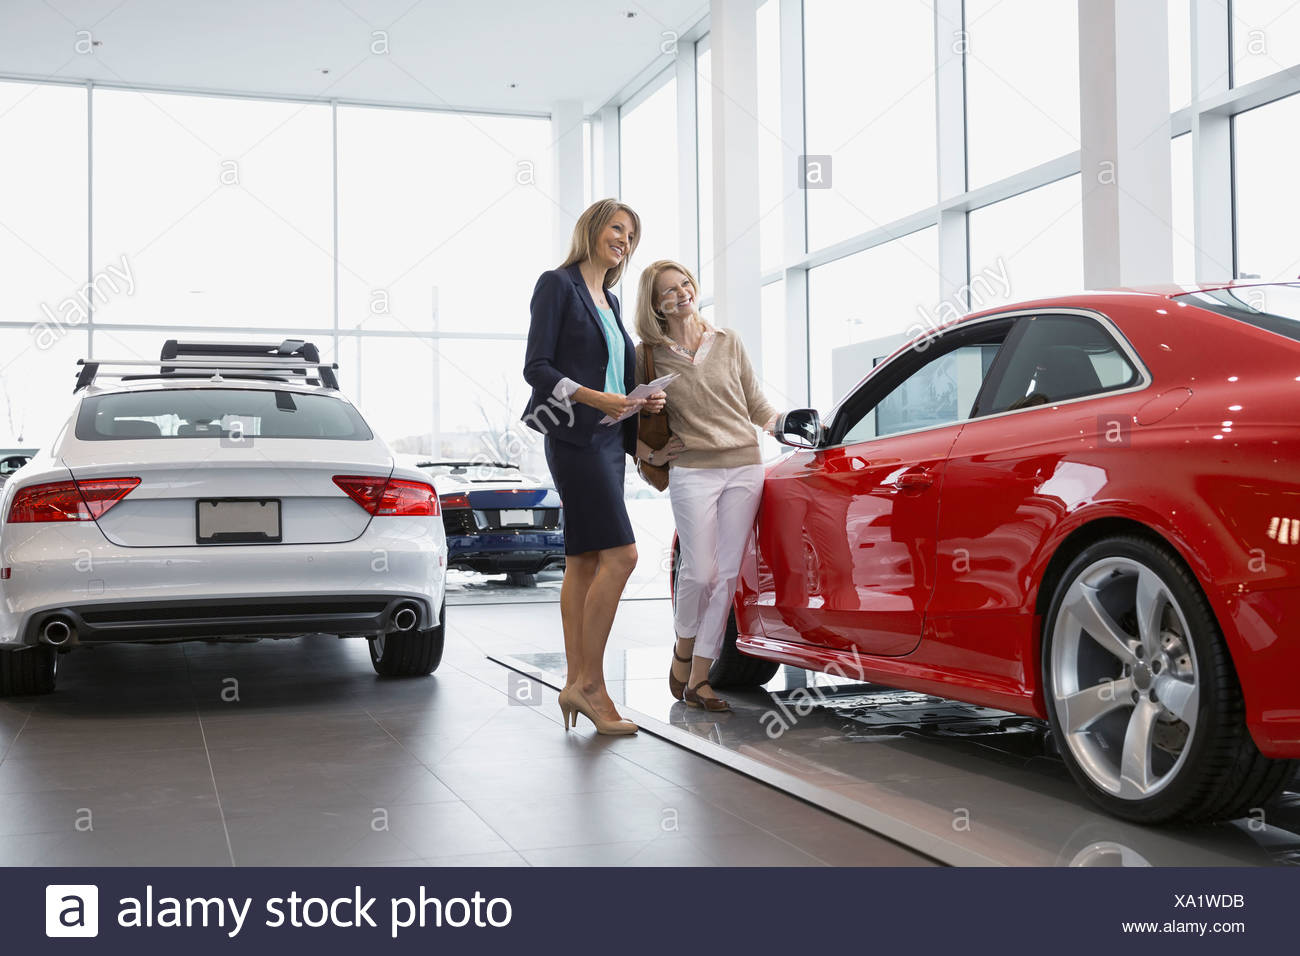 Saleswoman and woman looking at car in showroom - Stock Image